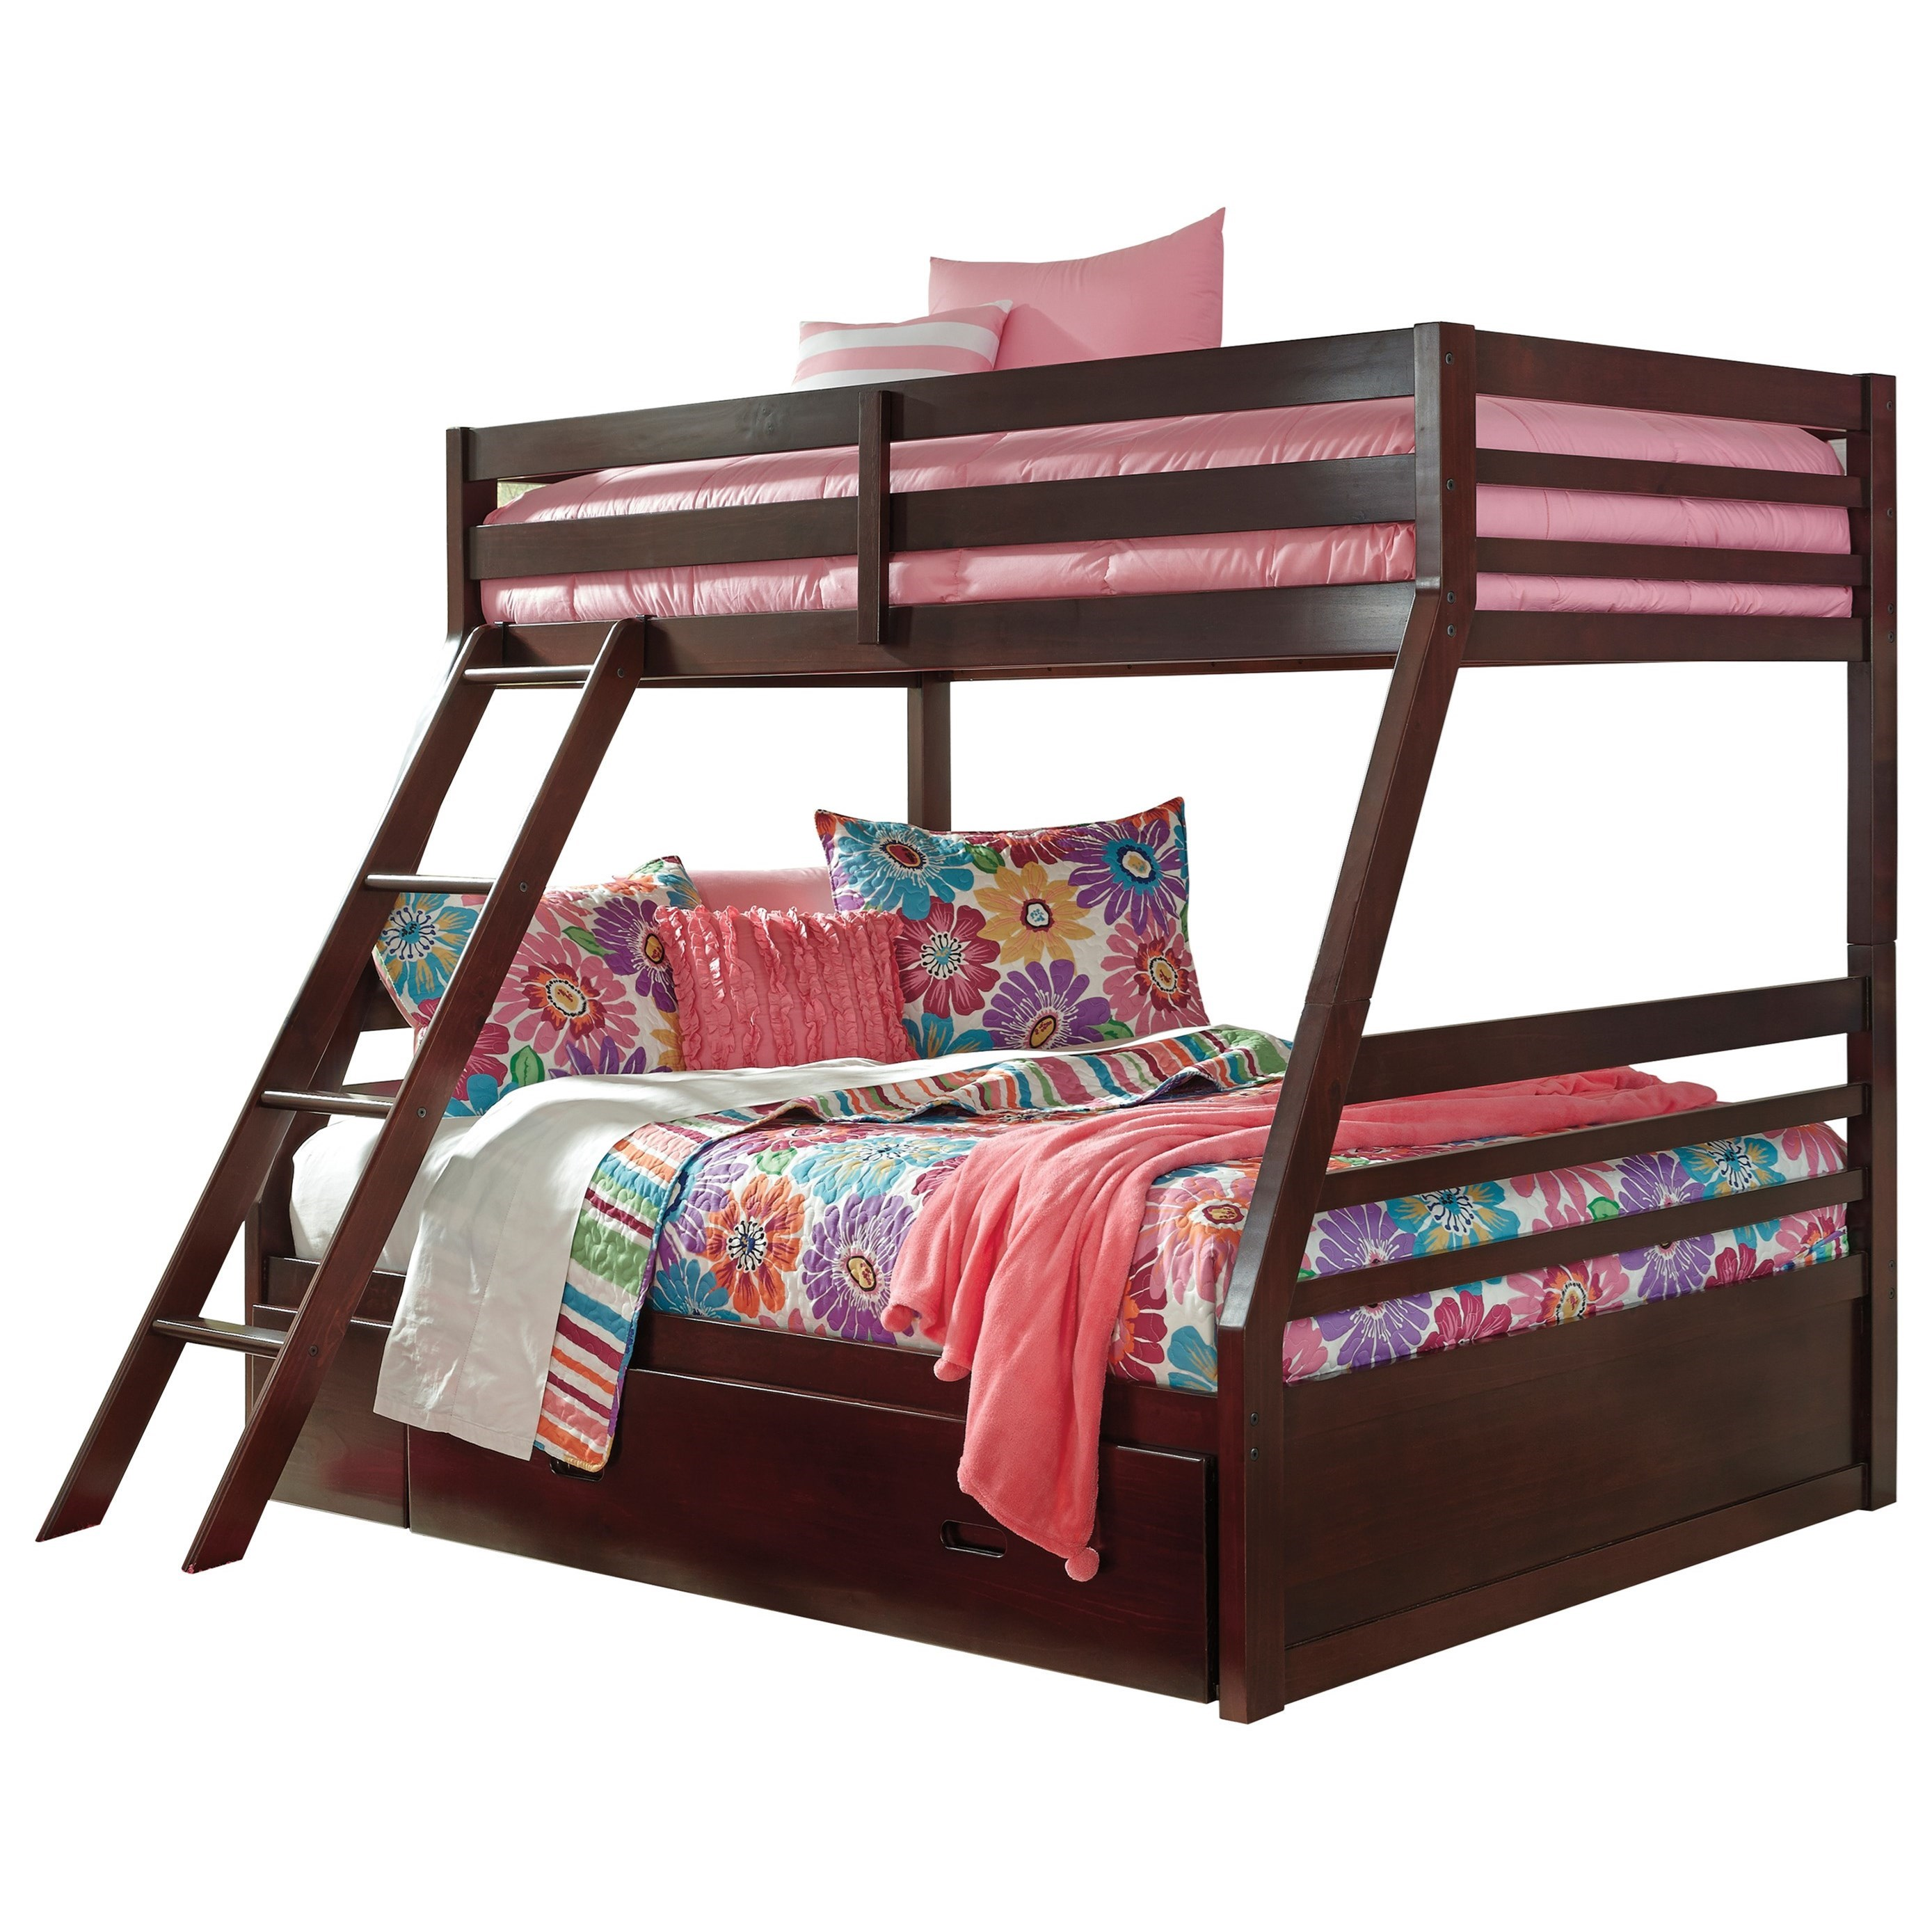 Twin/Full Bunk Bed w/ Under Bed Storage